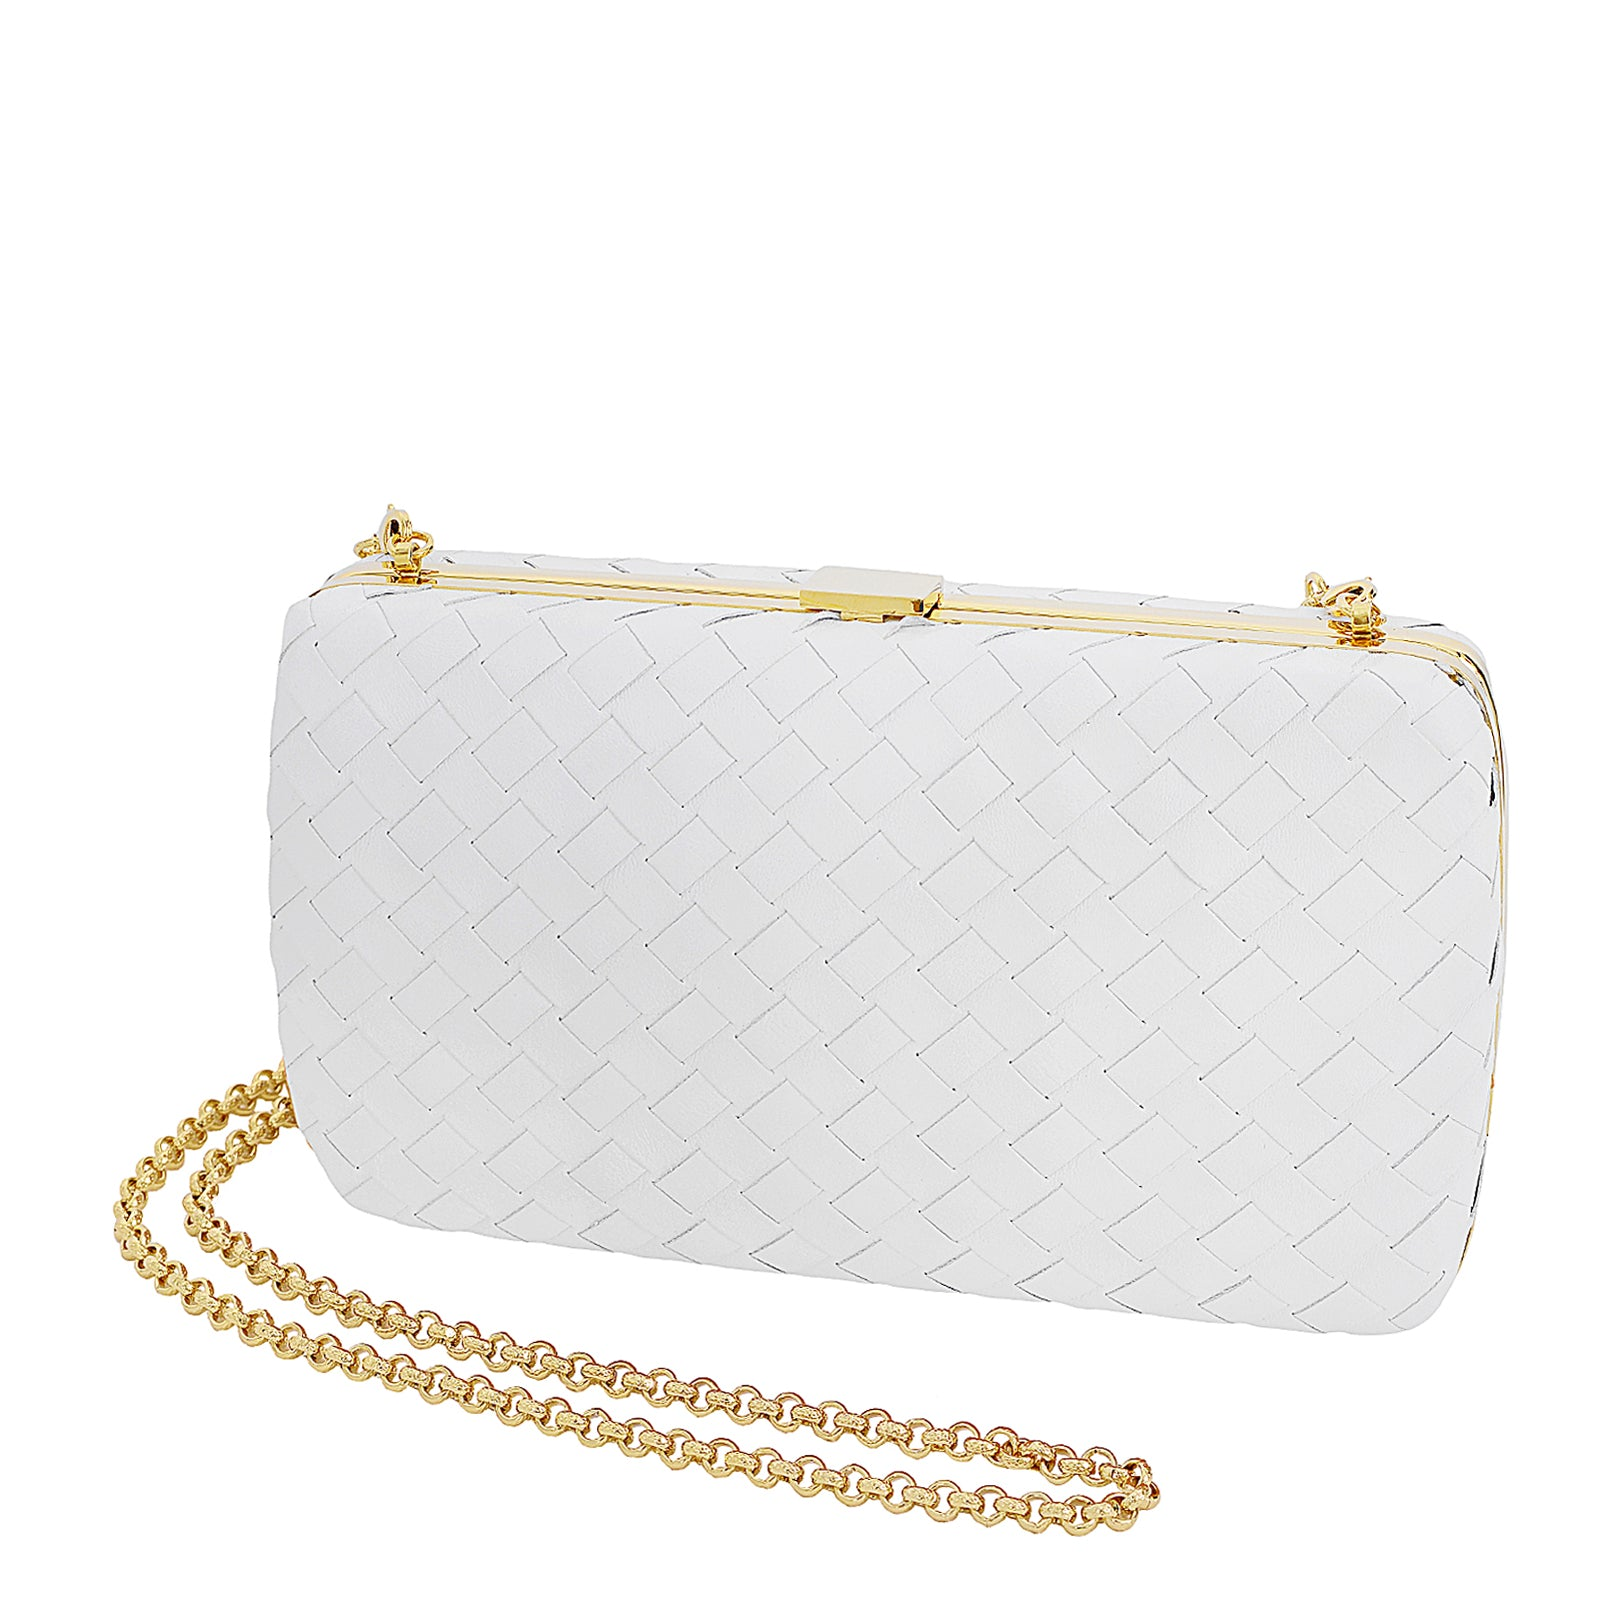 The Woven Clutch